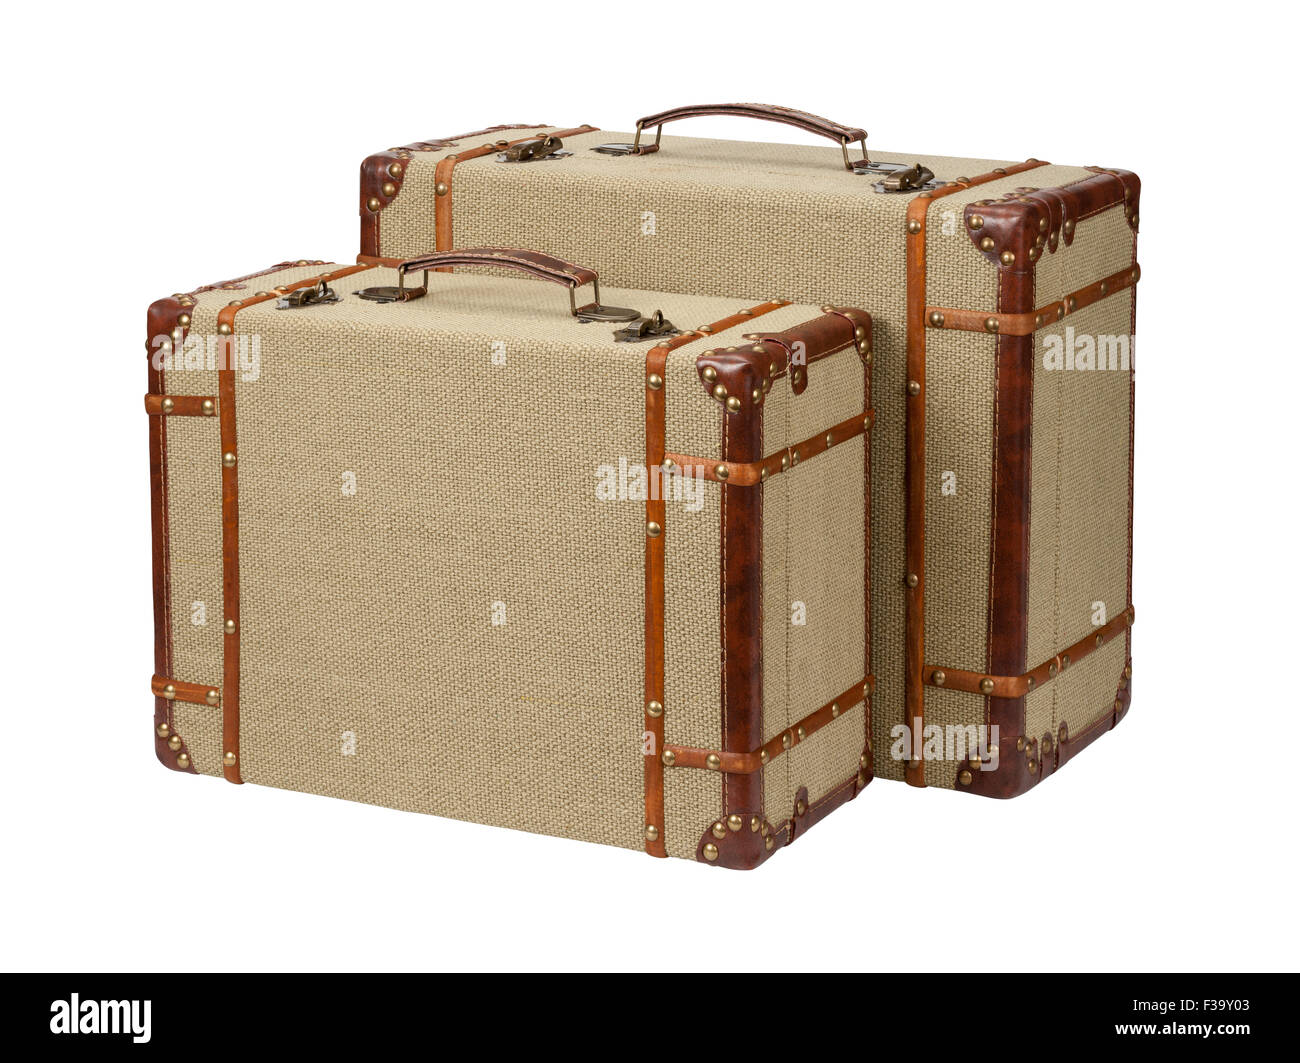 Two Standing Wood Burlap Suitcases.  The image is a cut out, isolated on a white background. - Stock Image